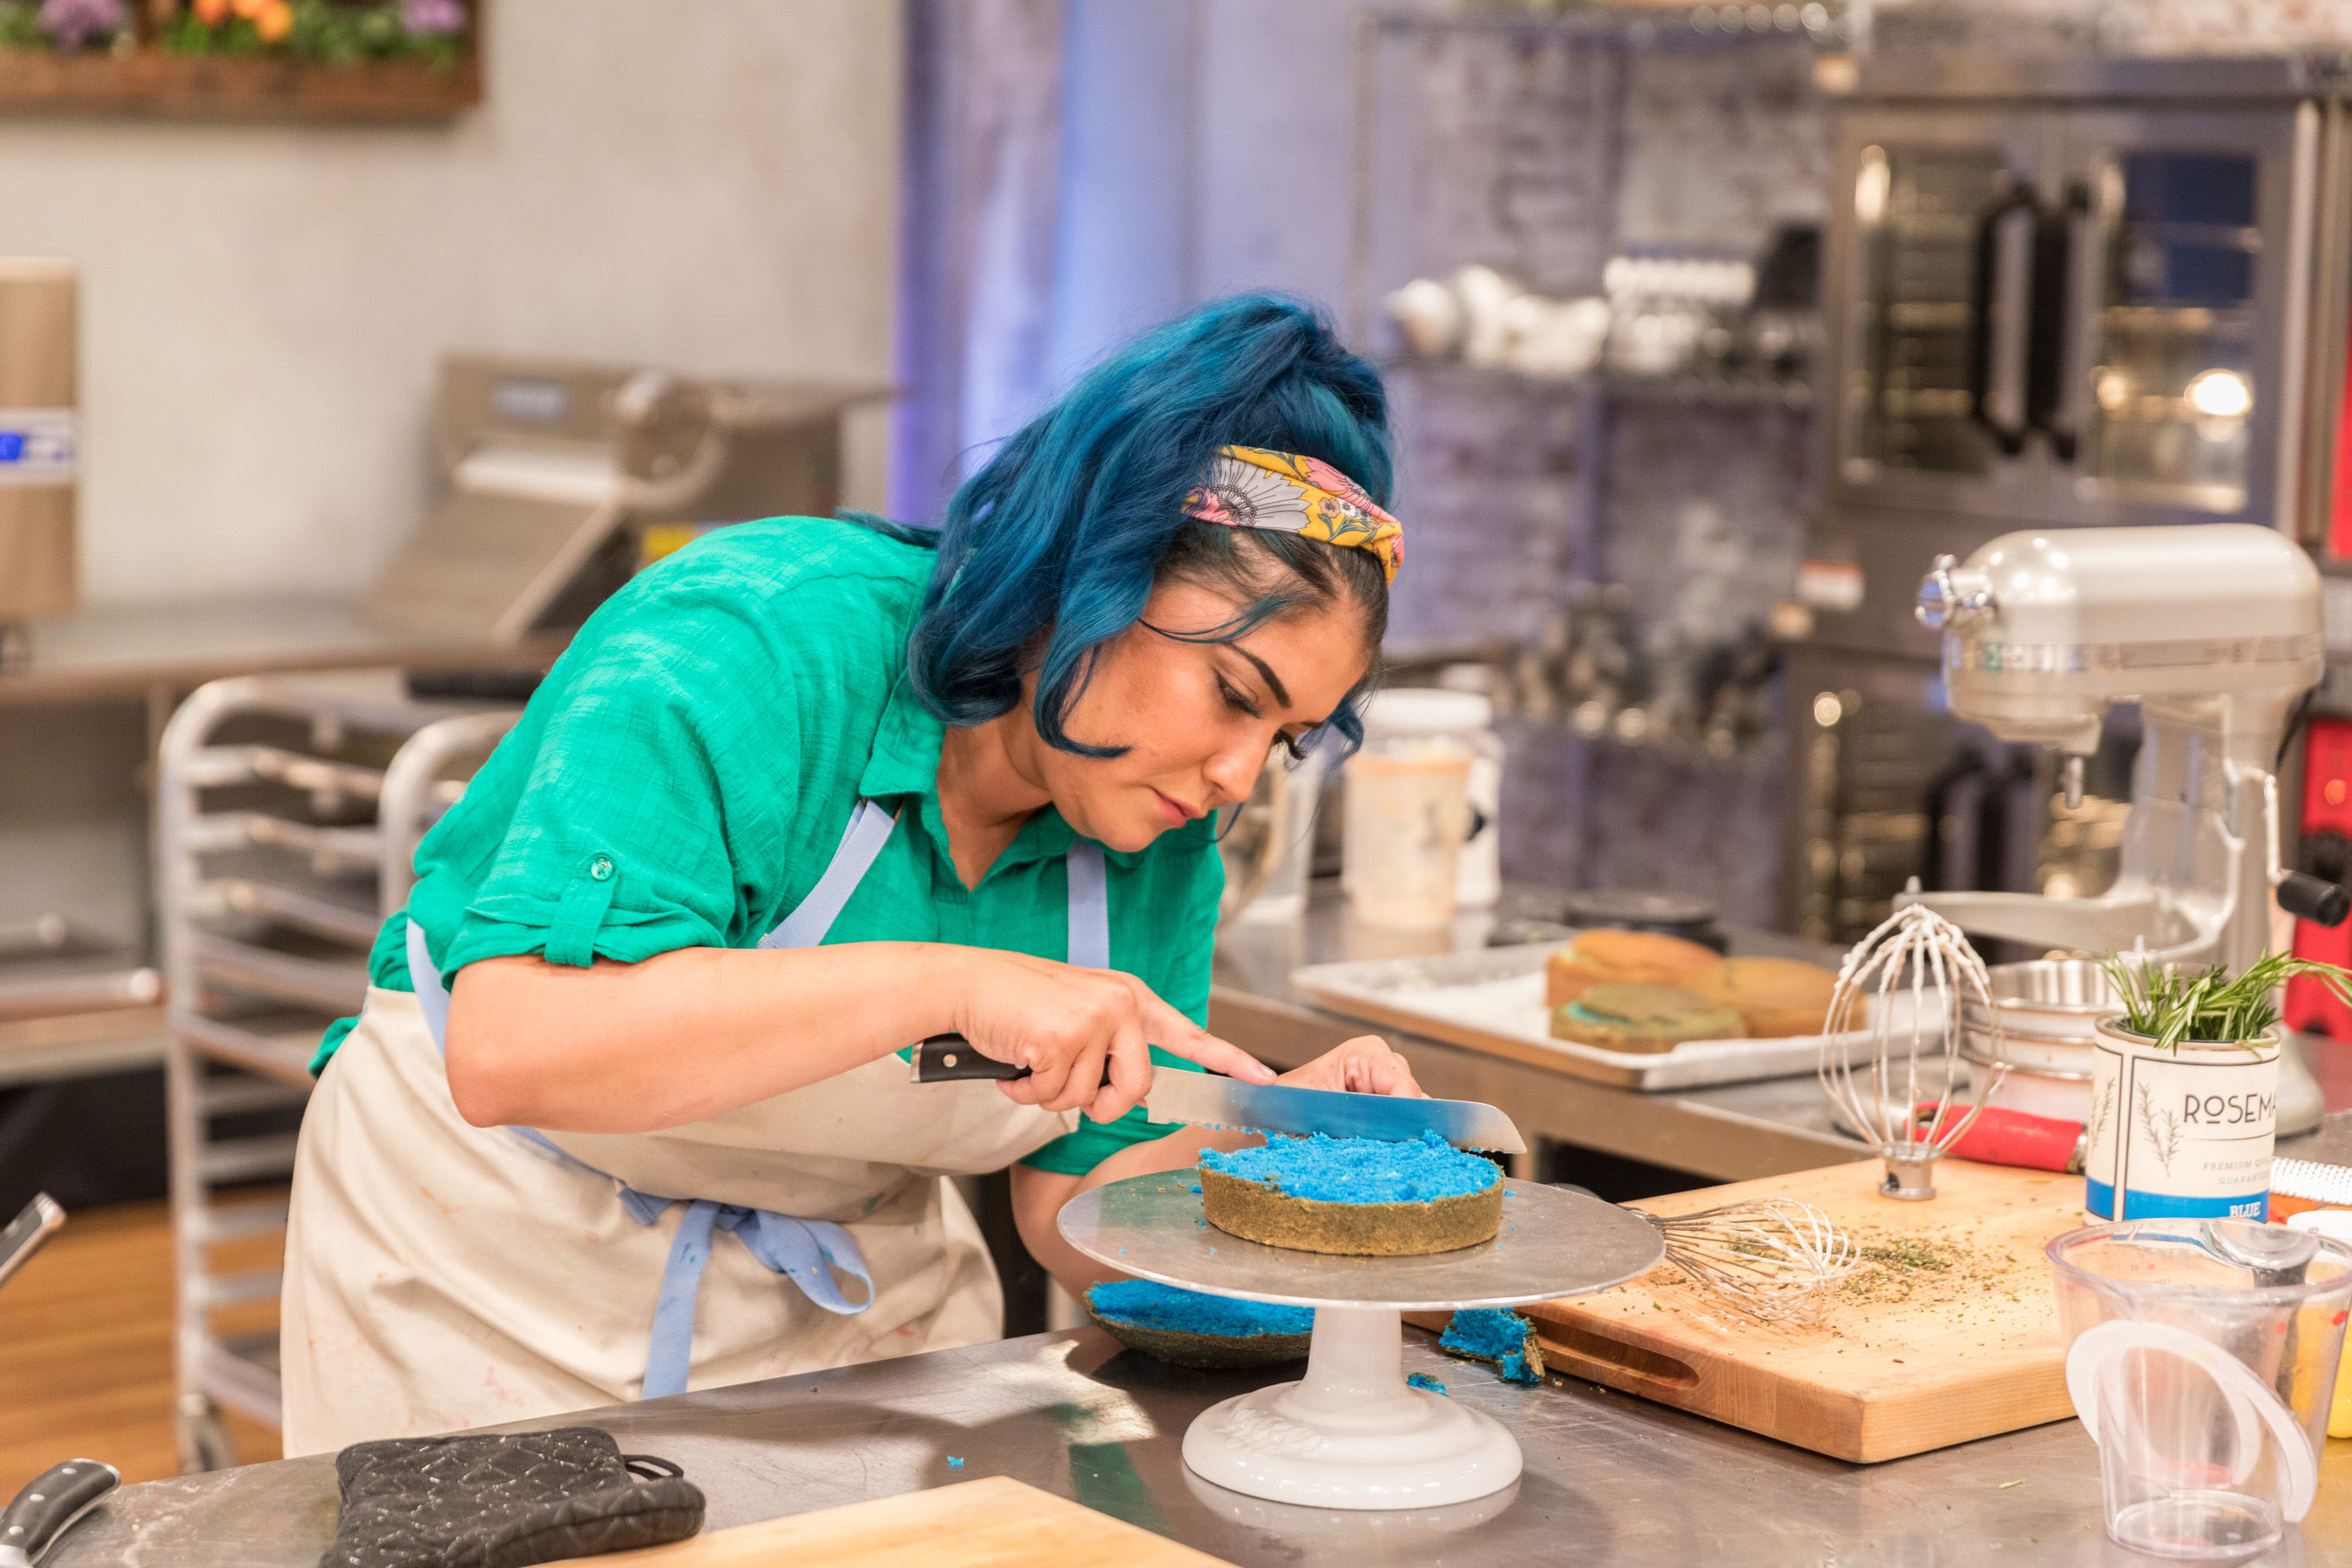 The competition is serious on Food Network's Spring Baking Championship